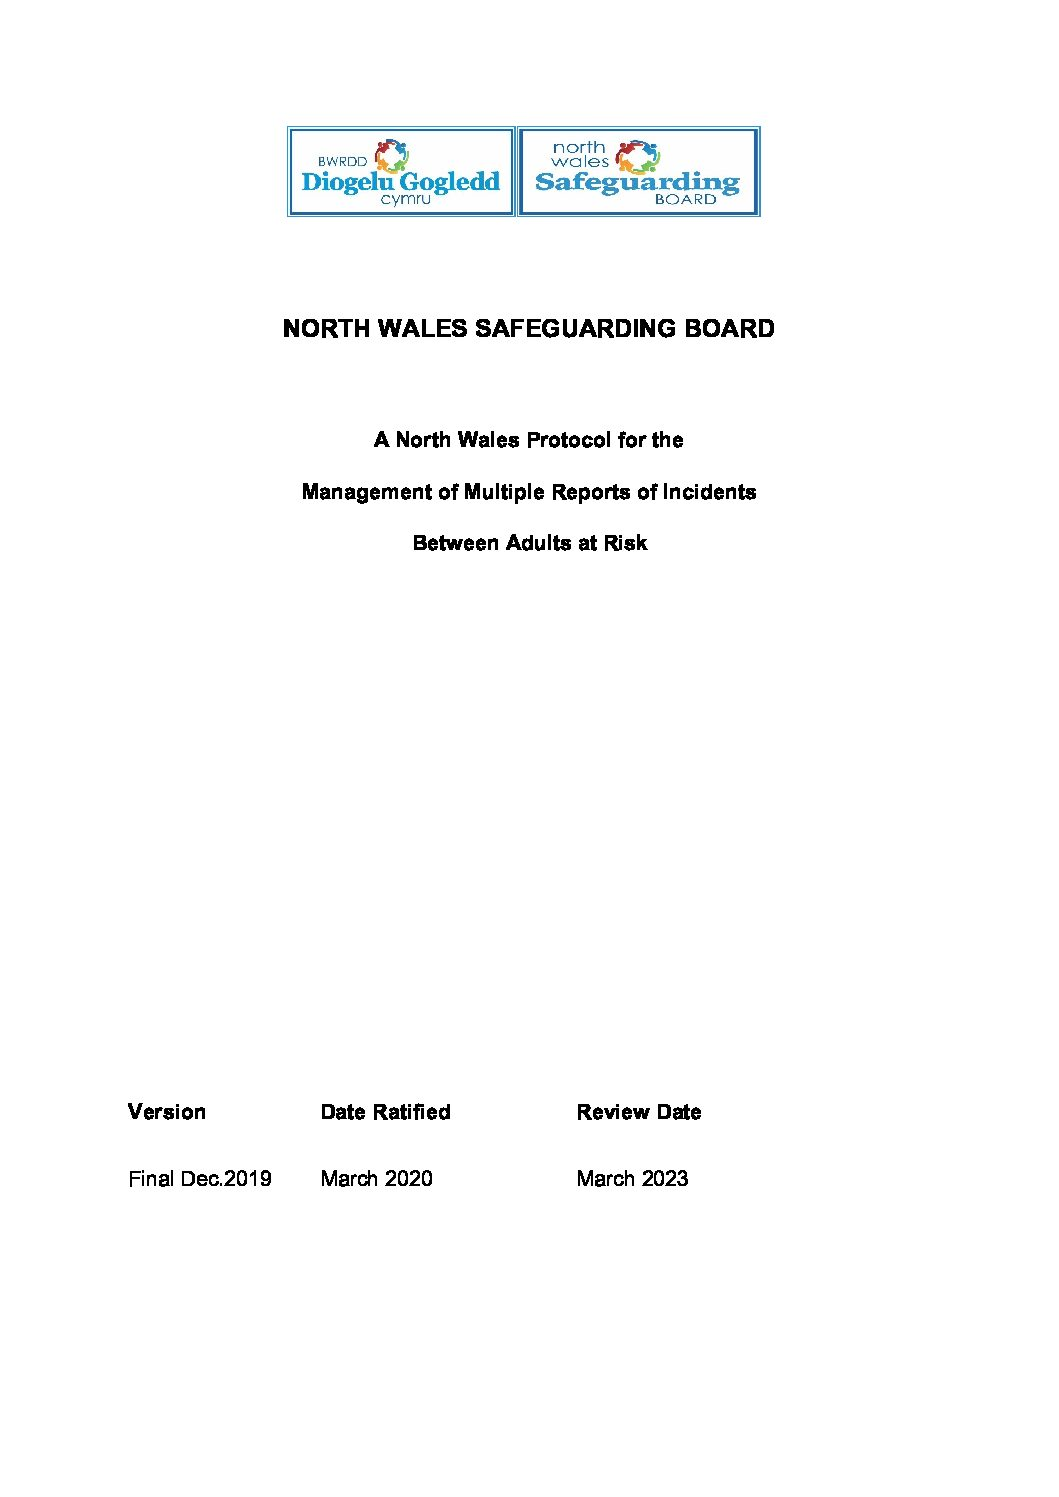 NWSAB Protocol for Managing Multiple Reports